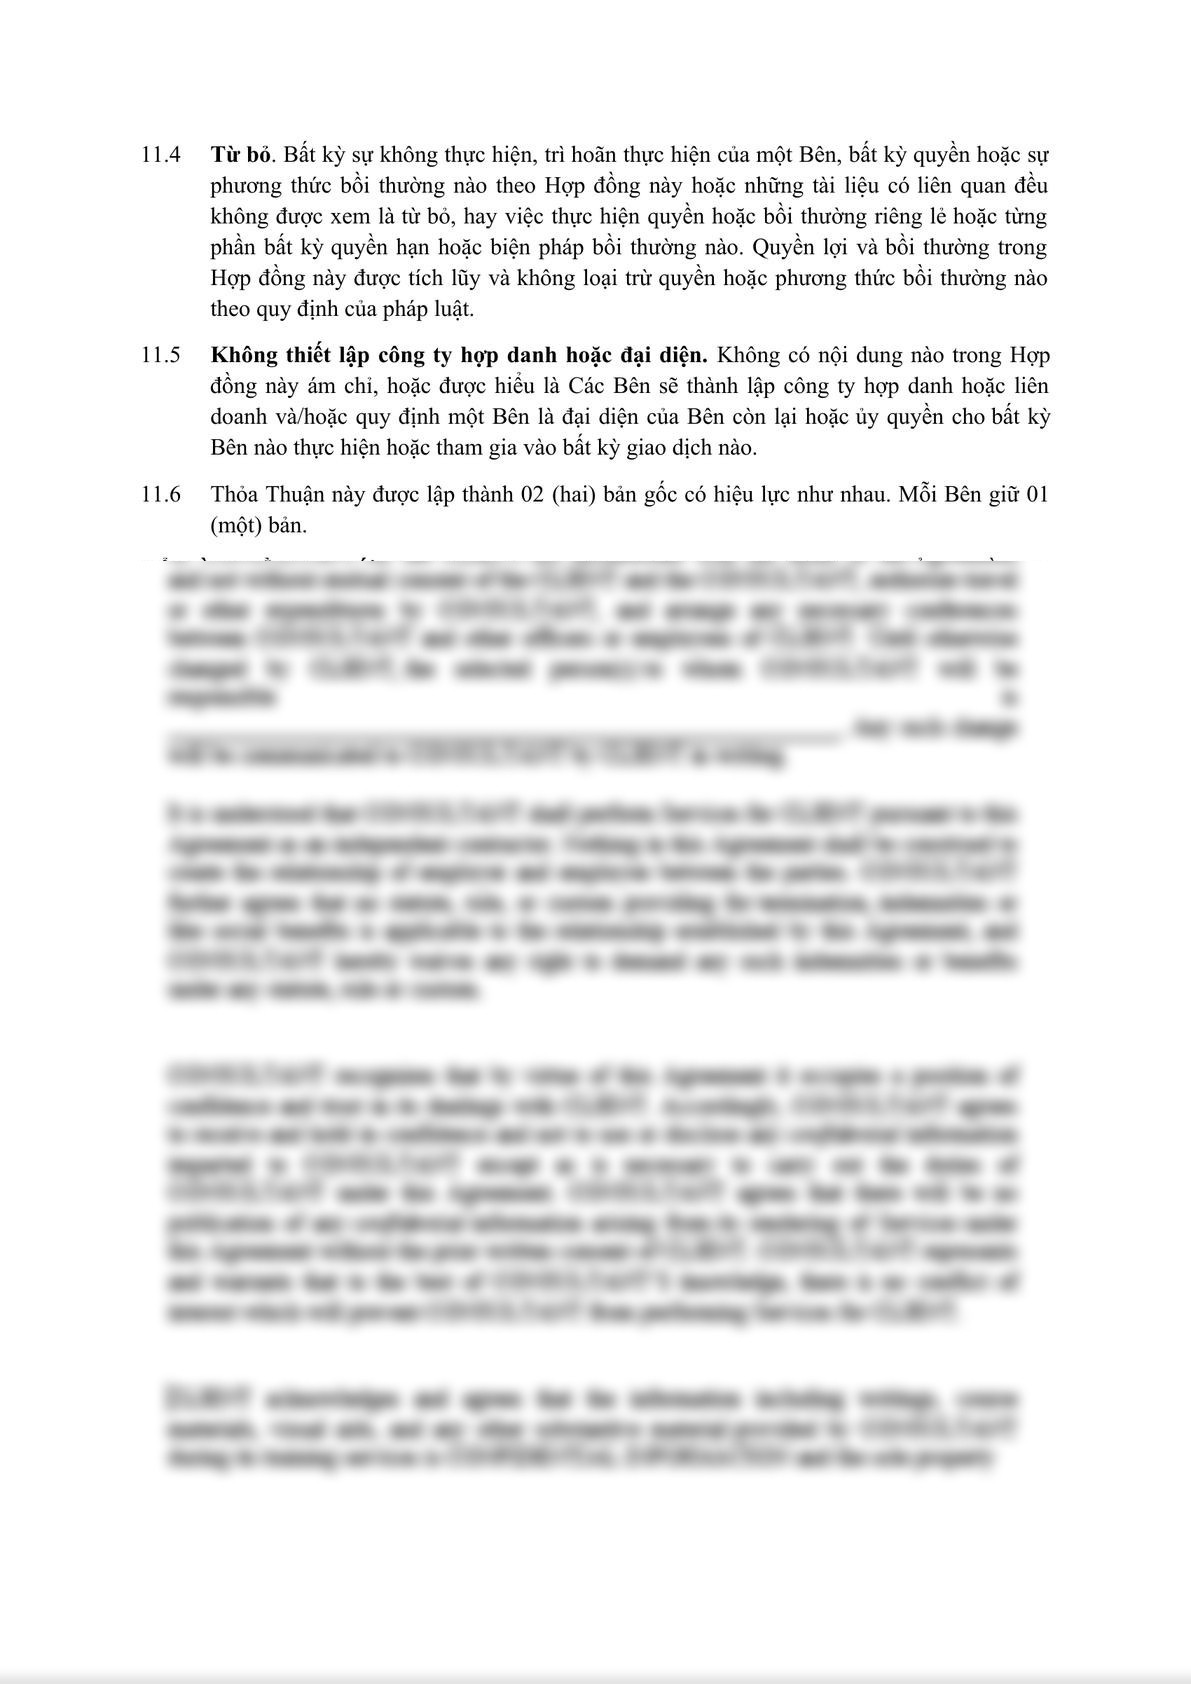 Master project collaboration agreement-8